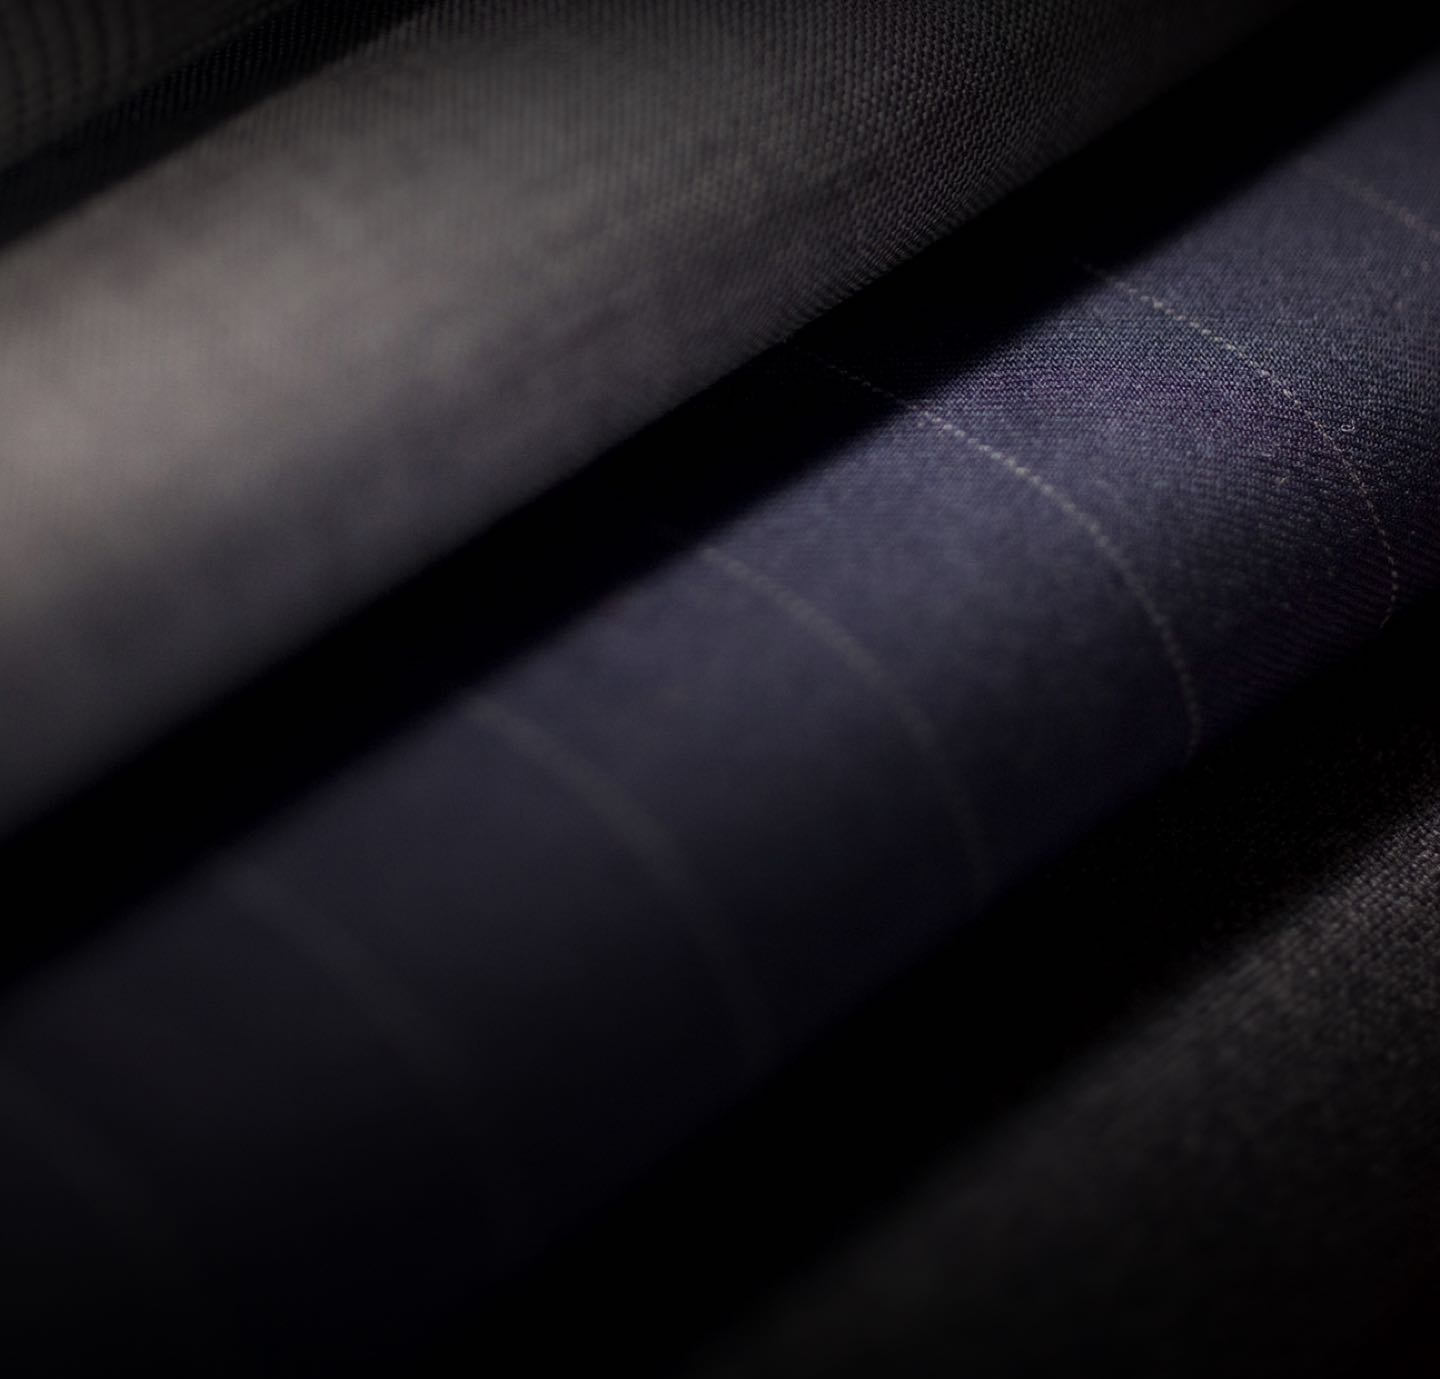 Close-up of navy pinstripe fabric